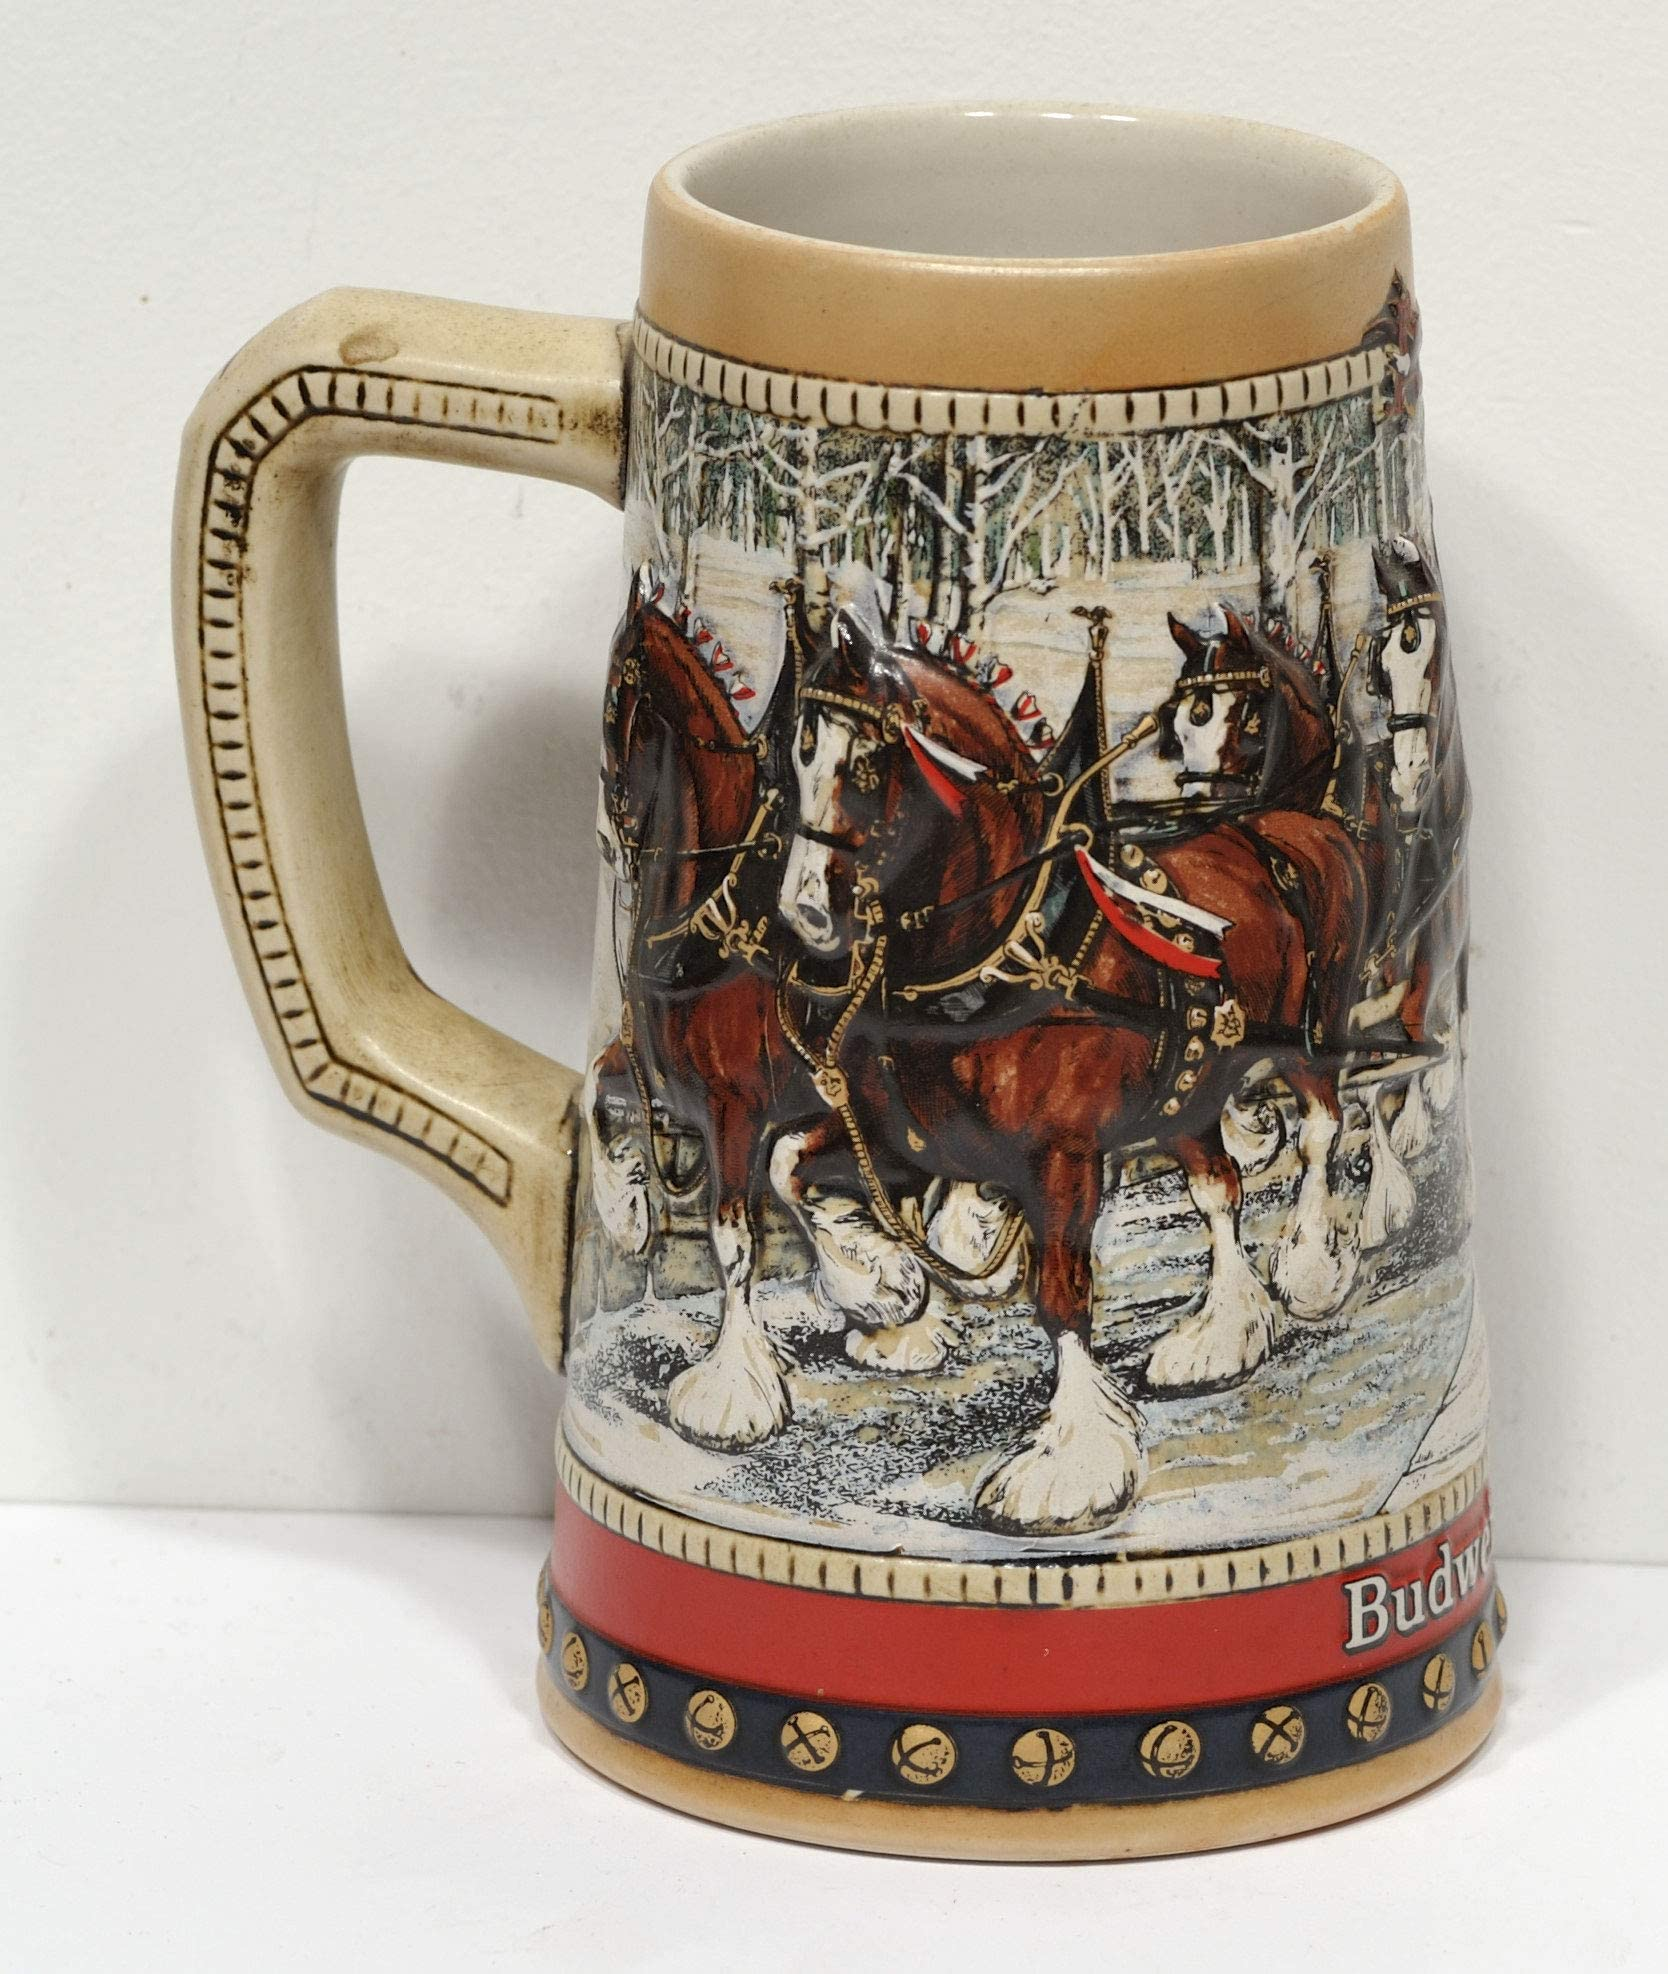 BUDWEISER 1988 COLLECTOR'S SERIES STEIN